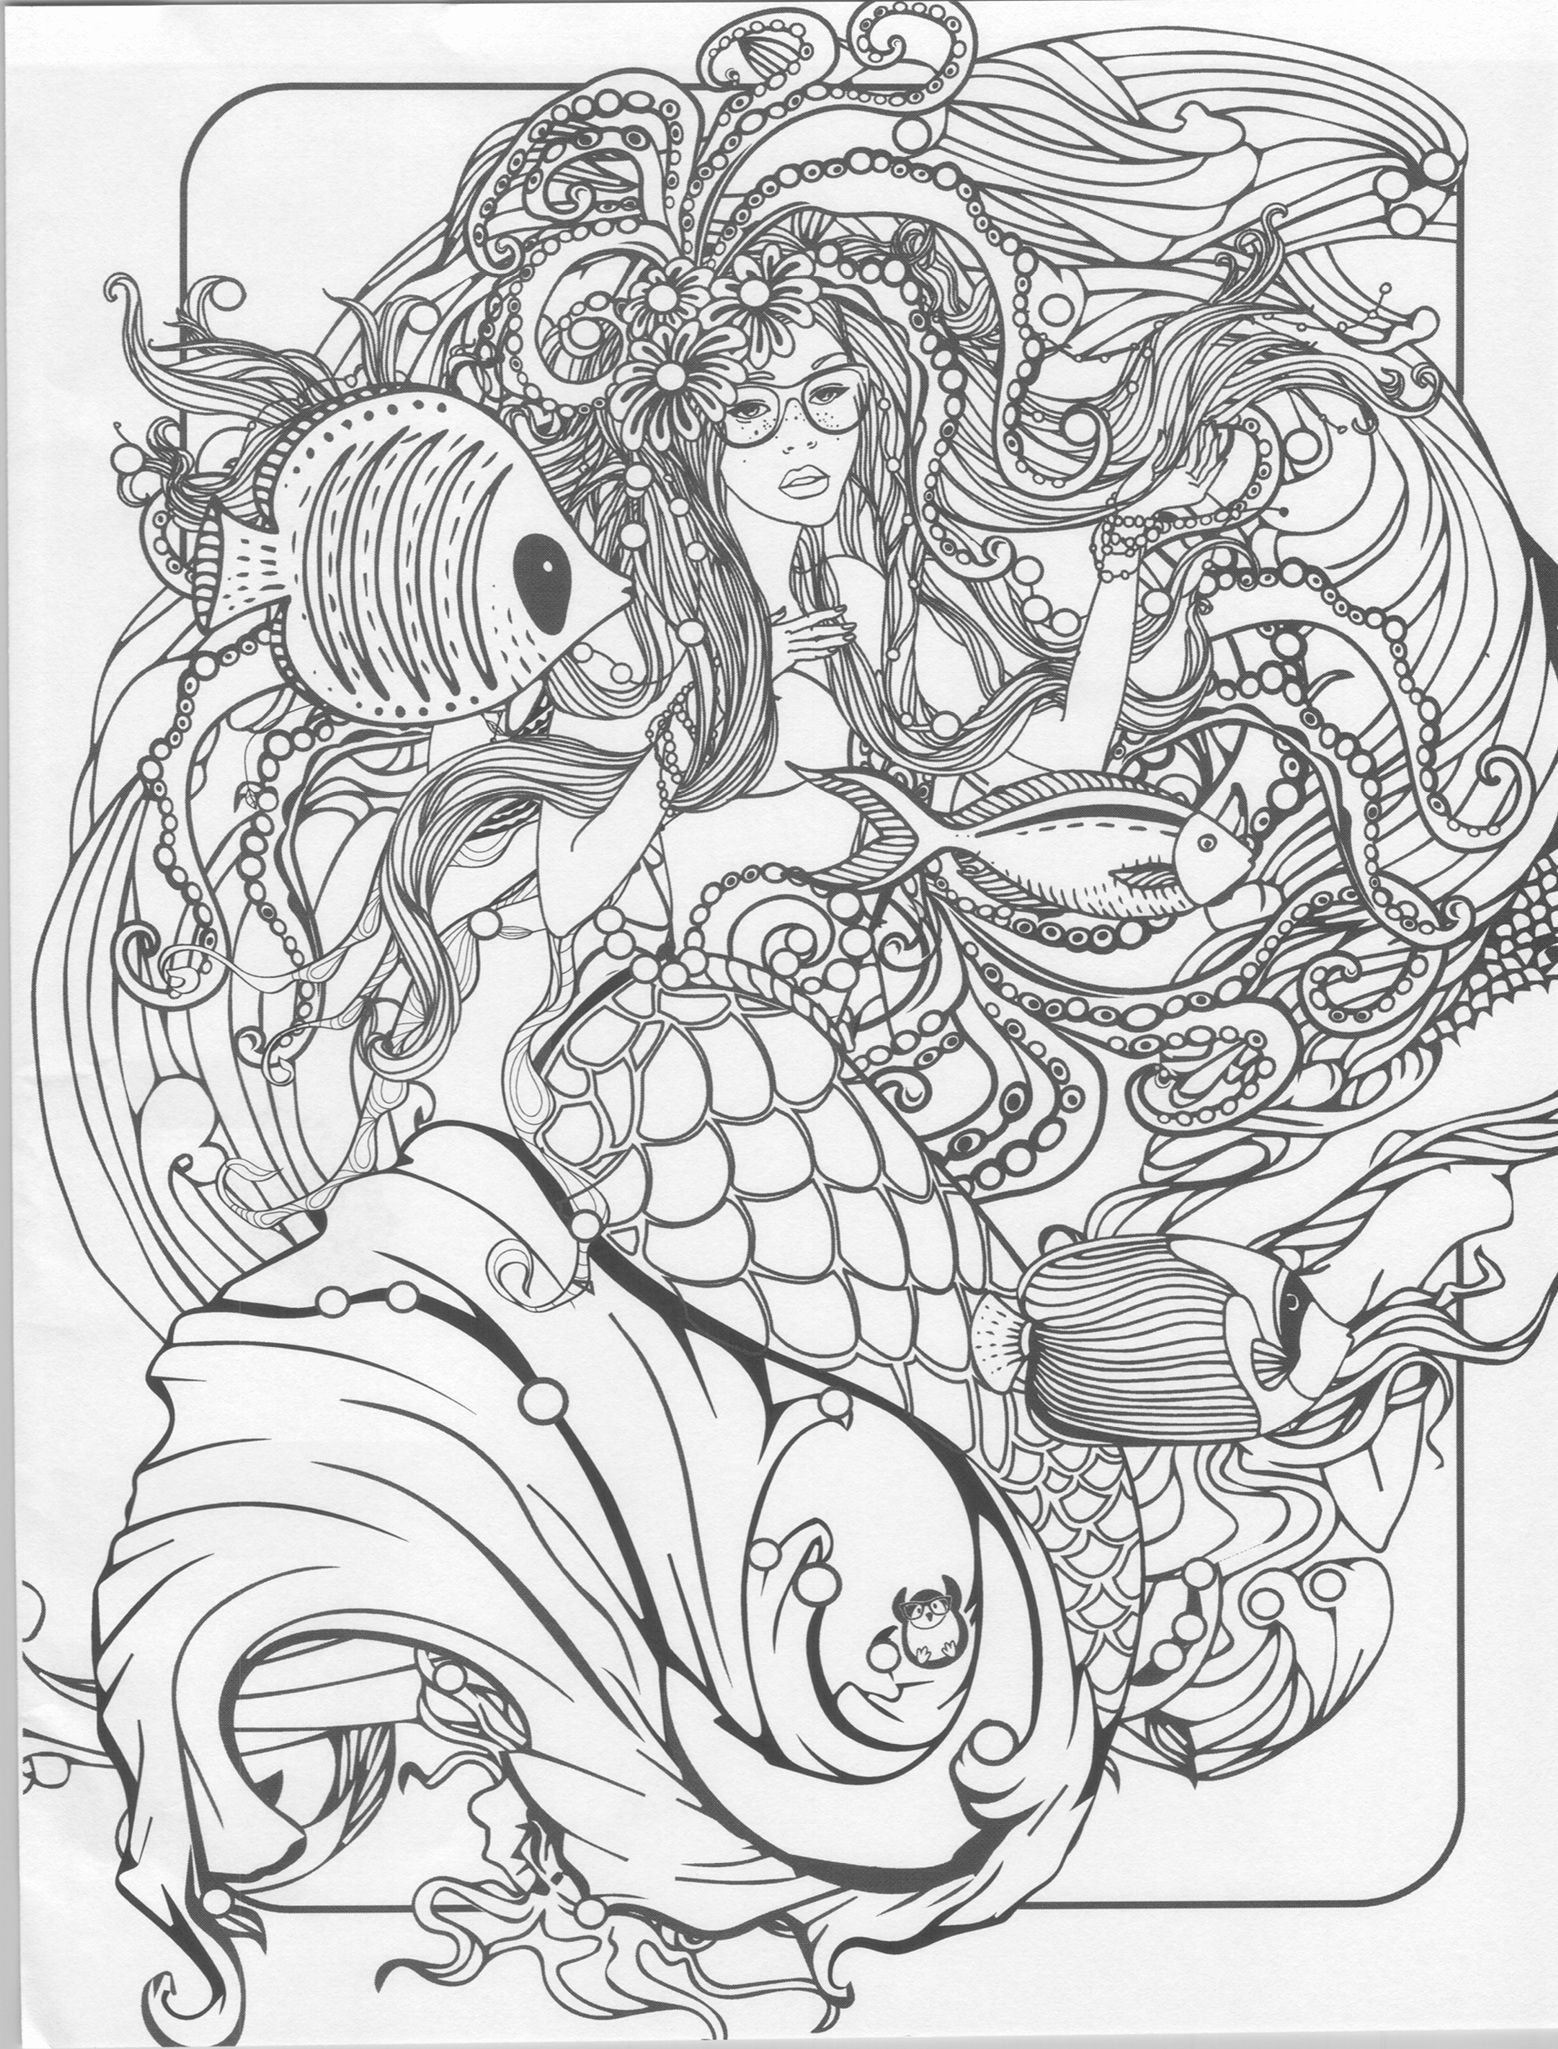 Realistic Mermaid Coloring Pages Awesome Mermaid Coloring Page Mermaid Coloring Pages for Adults Pinterest